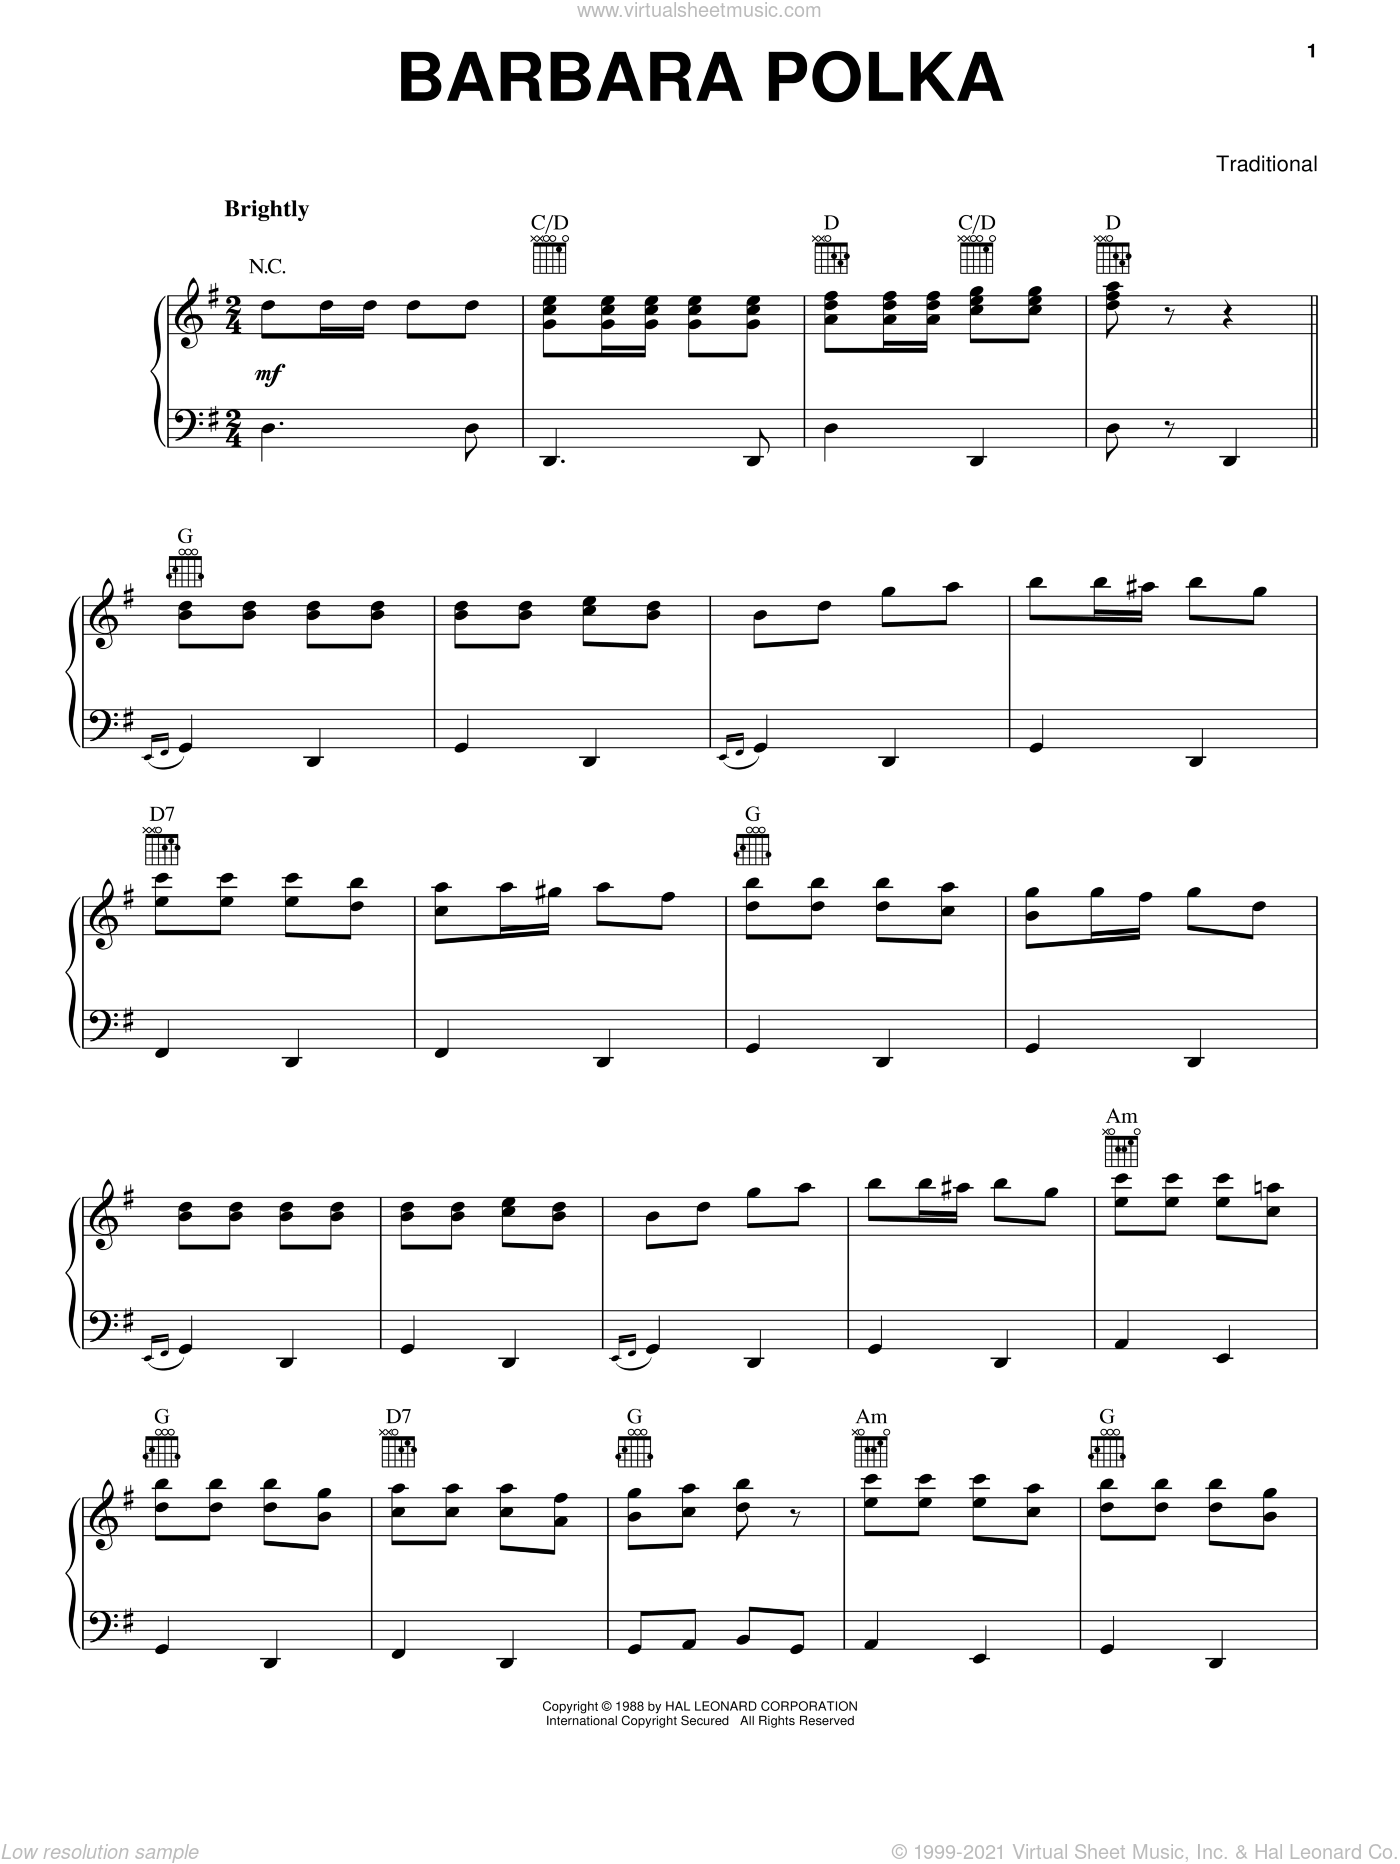 Barbara Polka sheet music for voice, piano or guitar